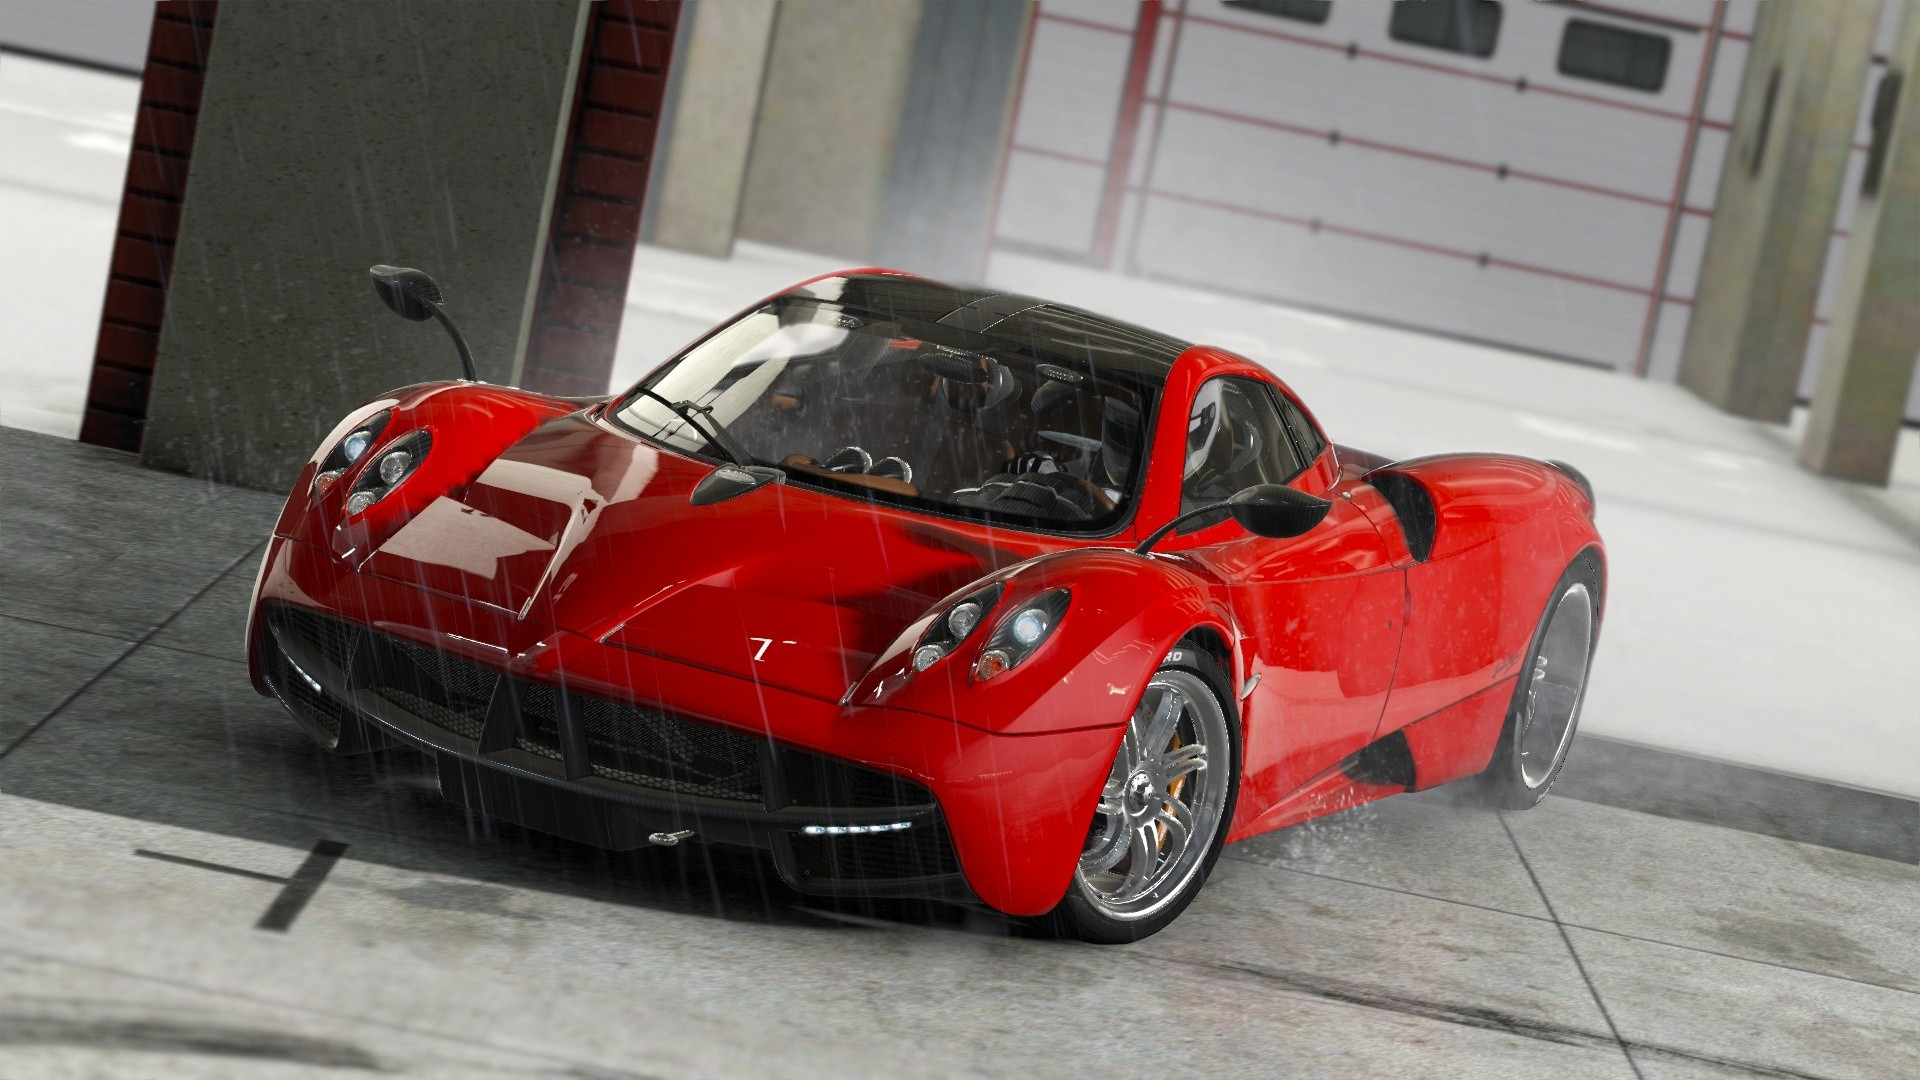 Video games cars pagani huayra project c a r s wallpaper - Project cars 4k wallpaper ...